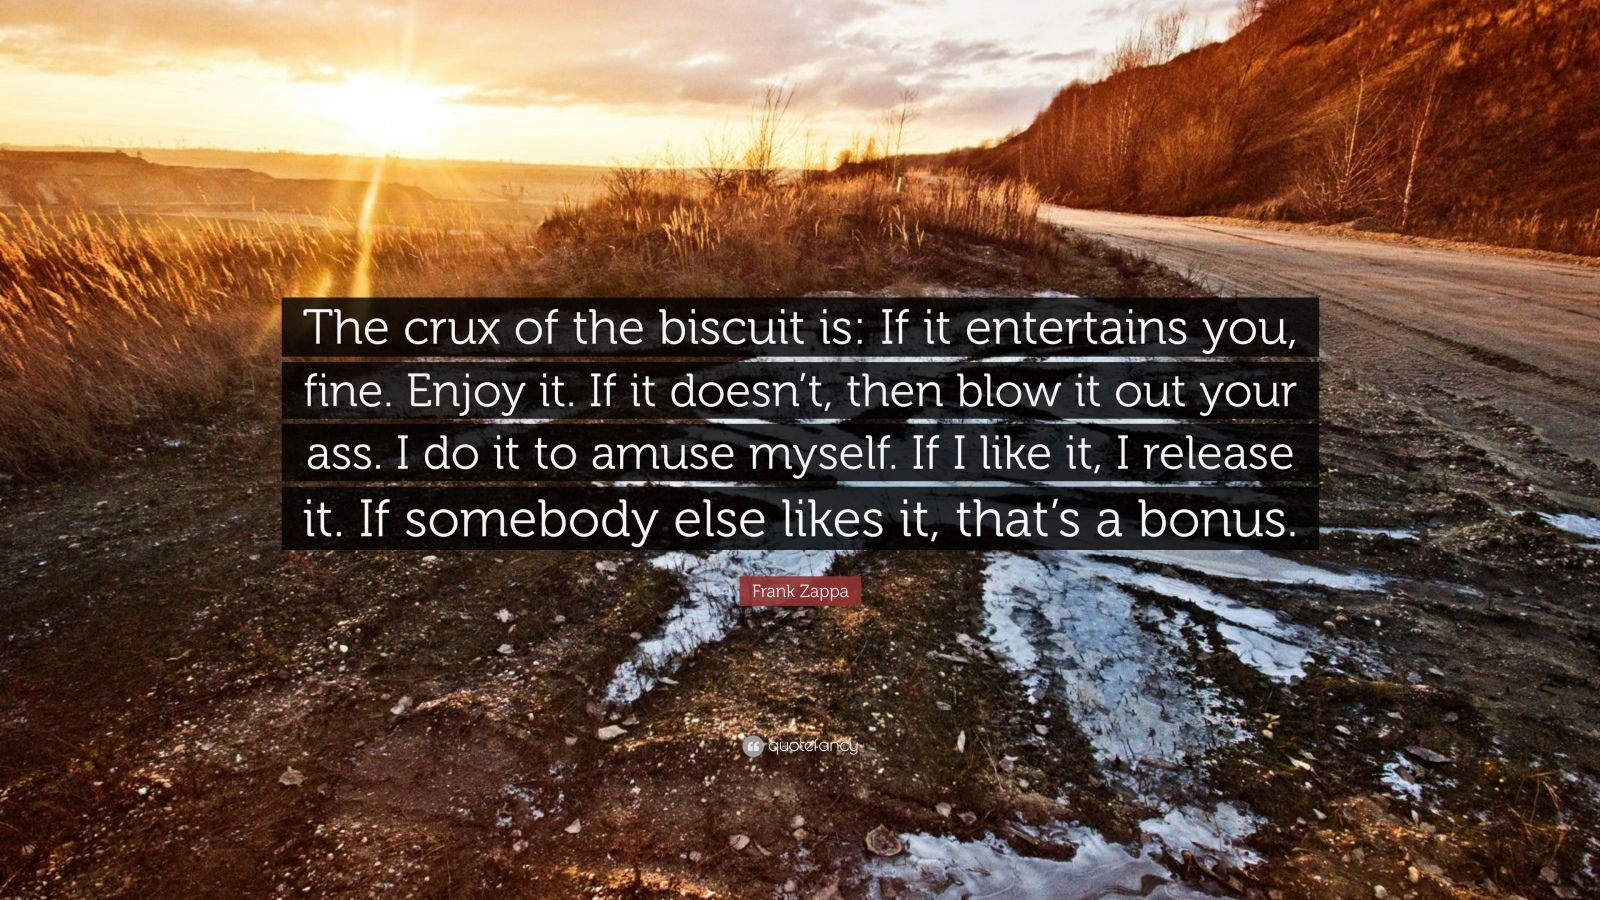 "Frank Zappa Quote: ""The crux of the biscuit is: If it entertains you, fine. Enjoy it. If it doesn't, then blow it out your ass. I do it to amuse myself. If I like it, I release it. If somebody else likes it, that's a bonus."""